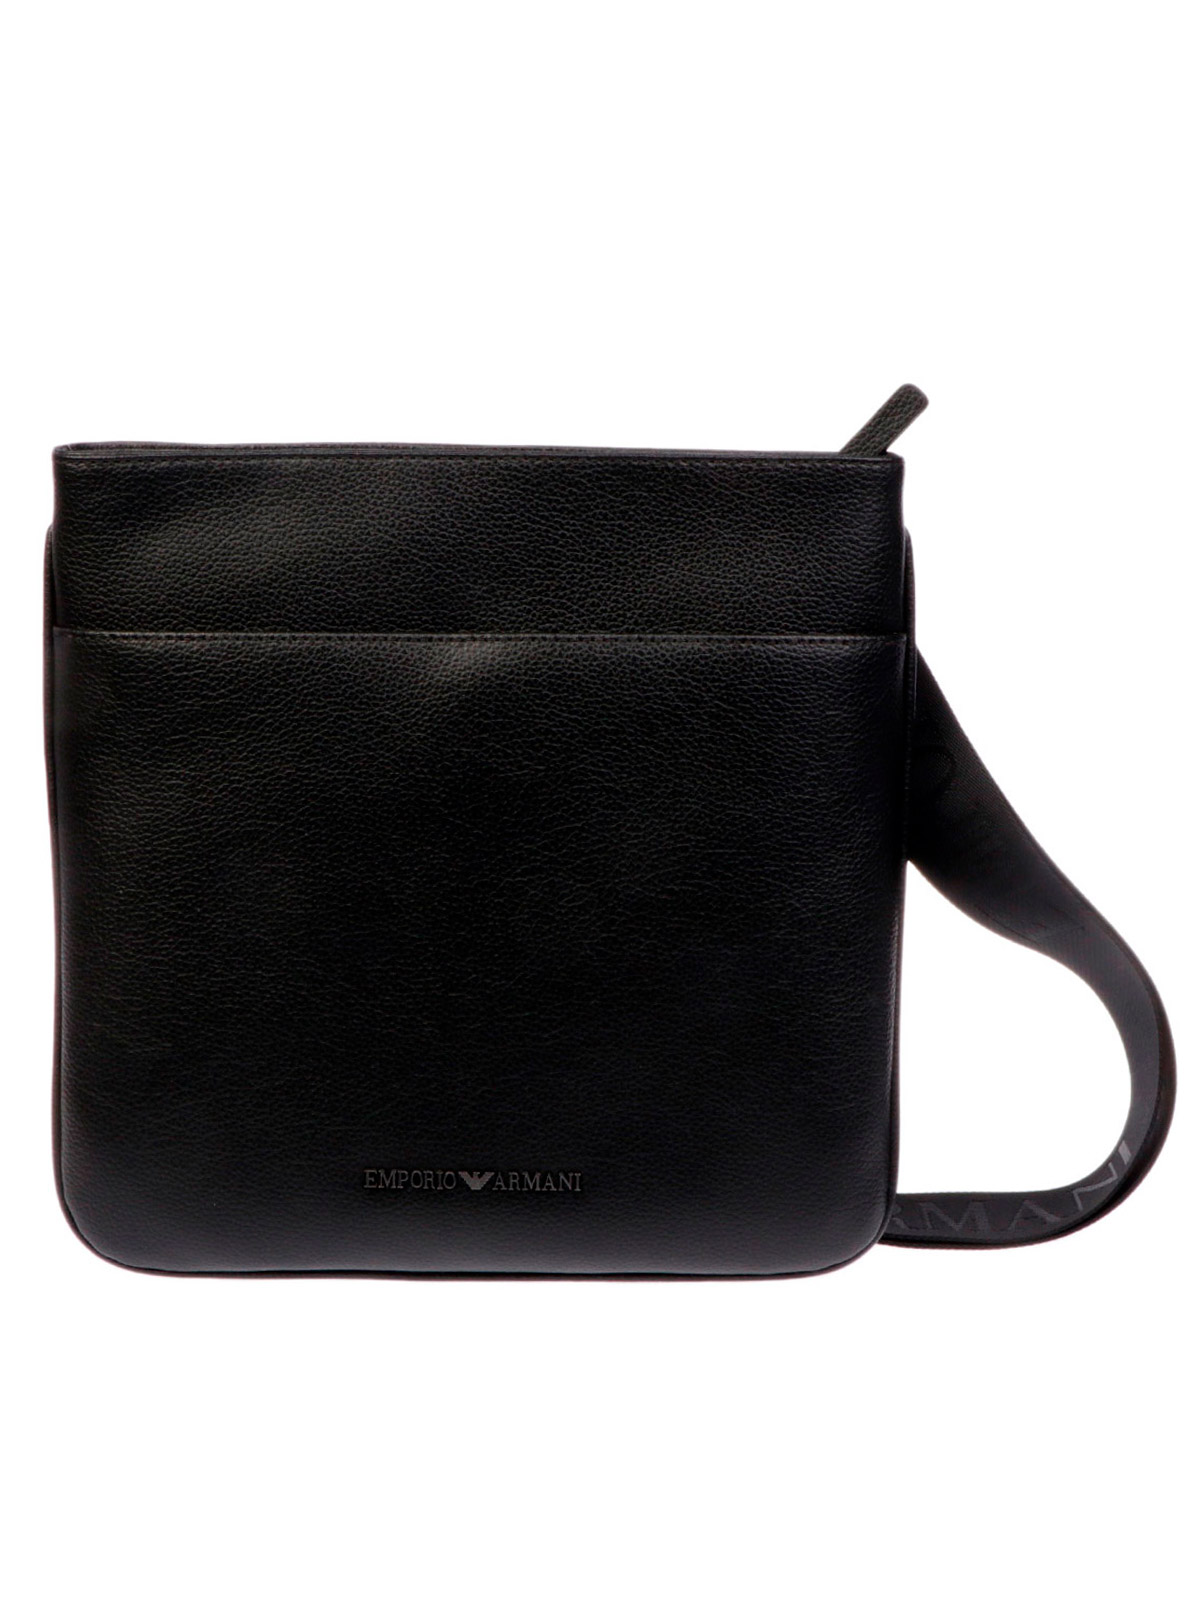 Picture of EMPORIO ARMANI | Men's Leather Cross-Body Bag